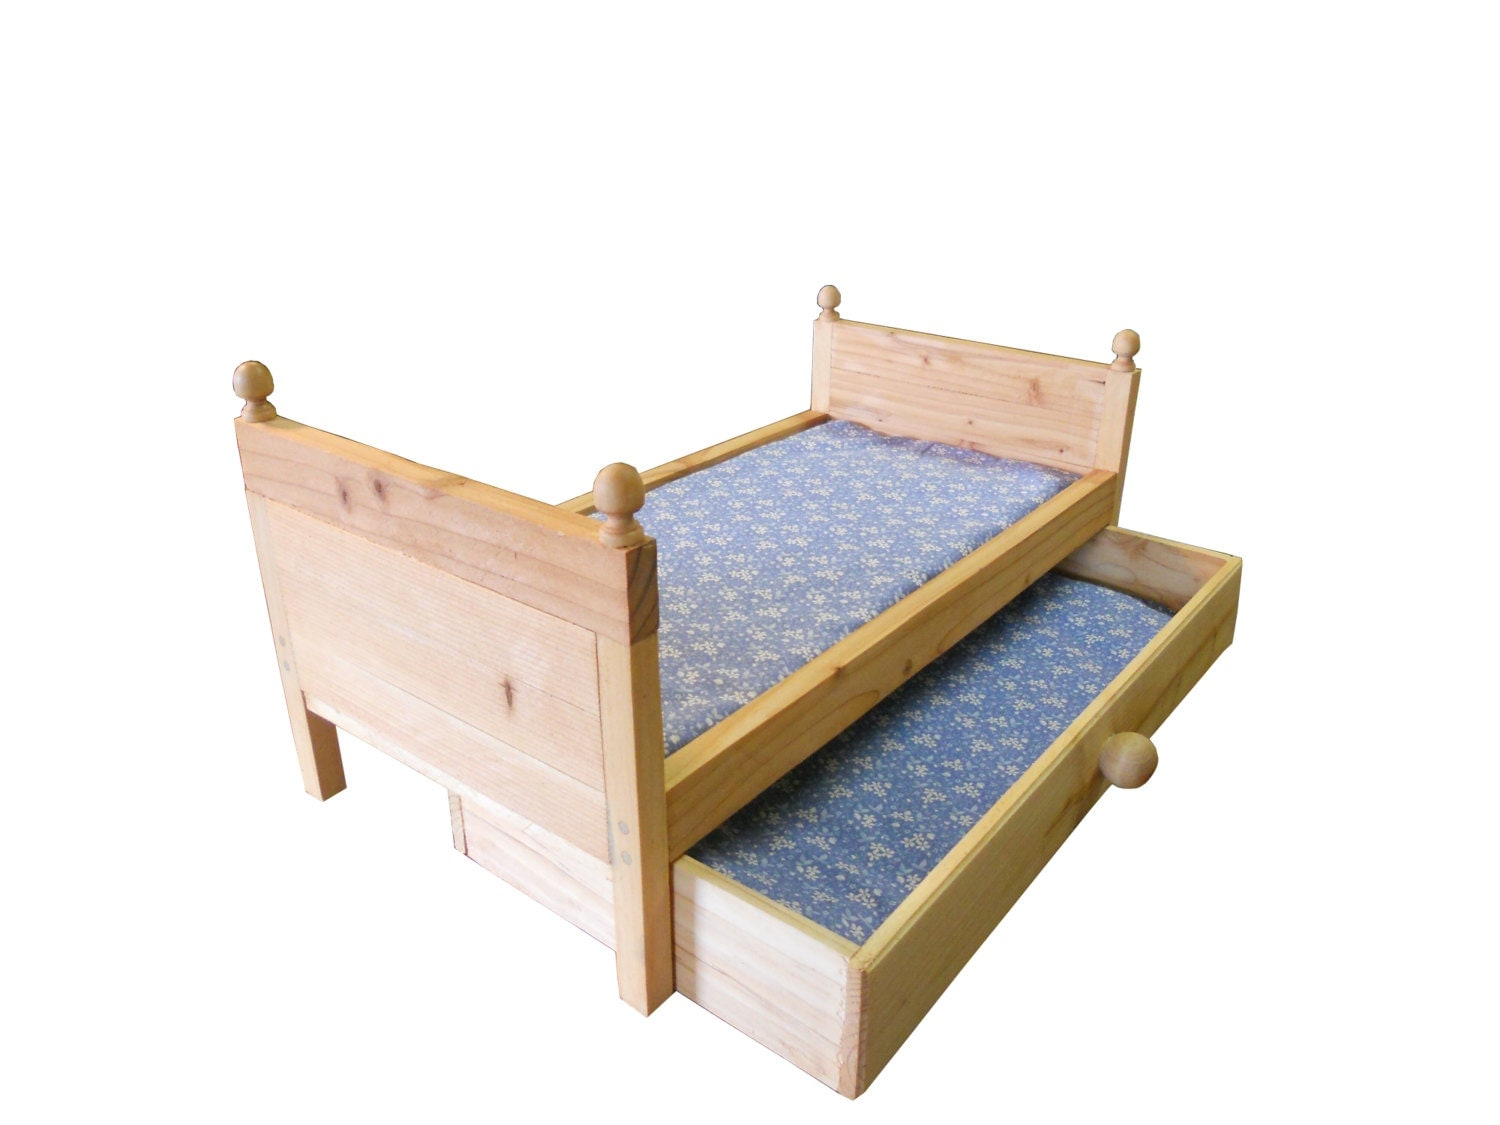 Marvelous photograph of Doll Trundle Bed fits An 18 to 20 Inch Doll And by BusyBeaverToys with #996832 color and 1500x1125 pixels